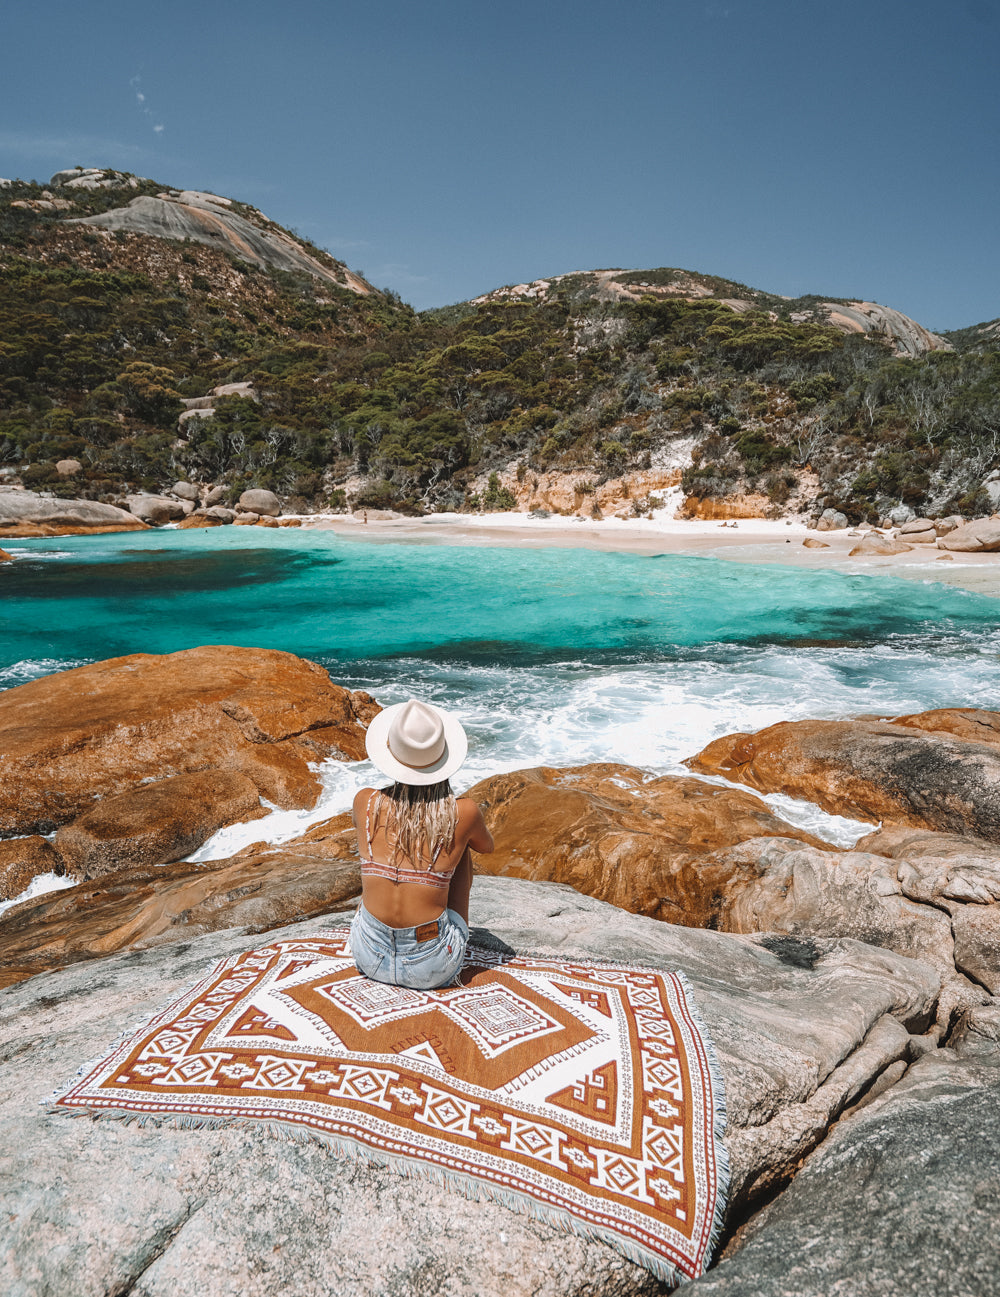 albany, two peoples bay, western australia